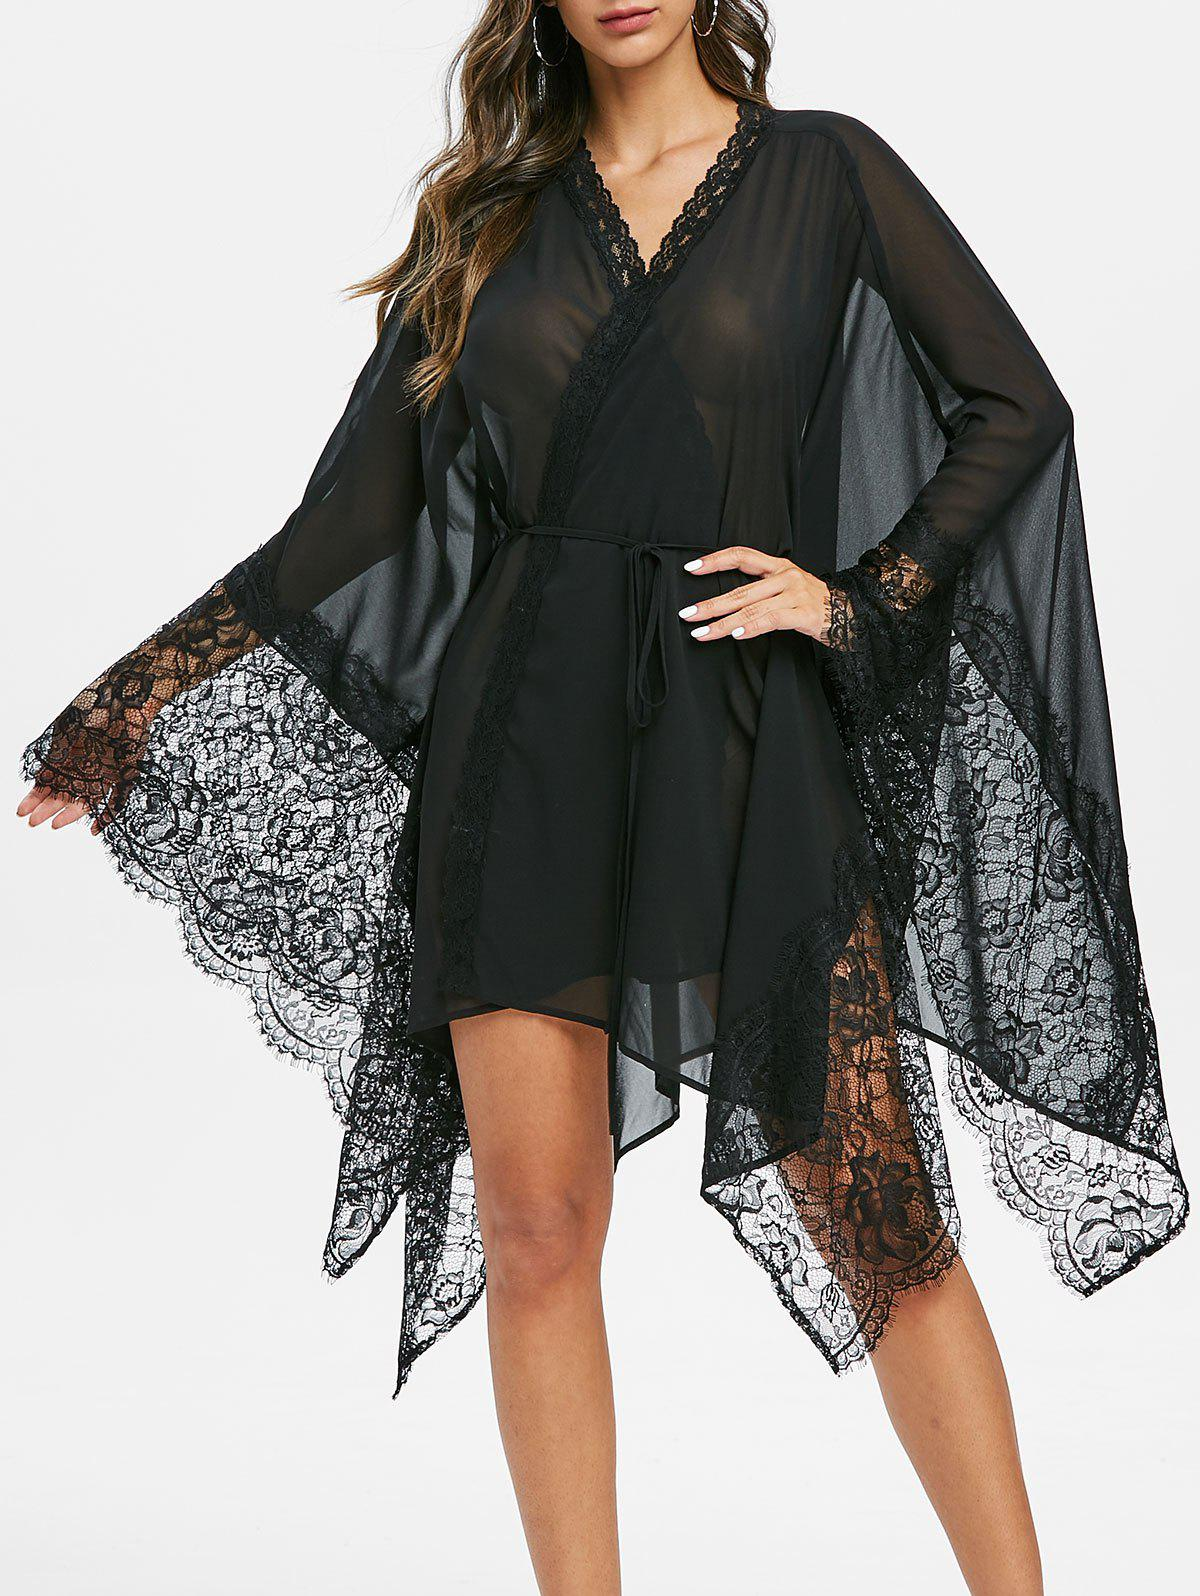 Lace Insert See Through Hanky Hem Wrap Dress - BLACK M